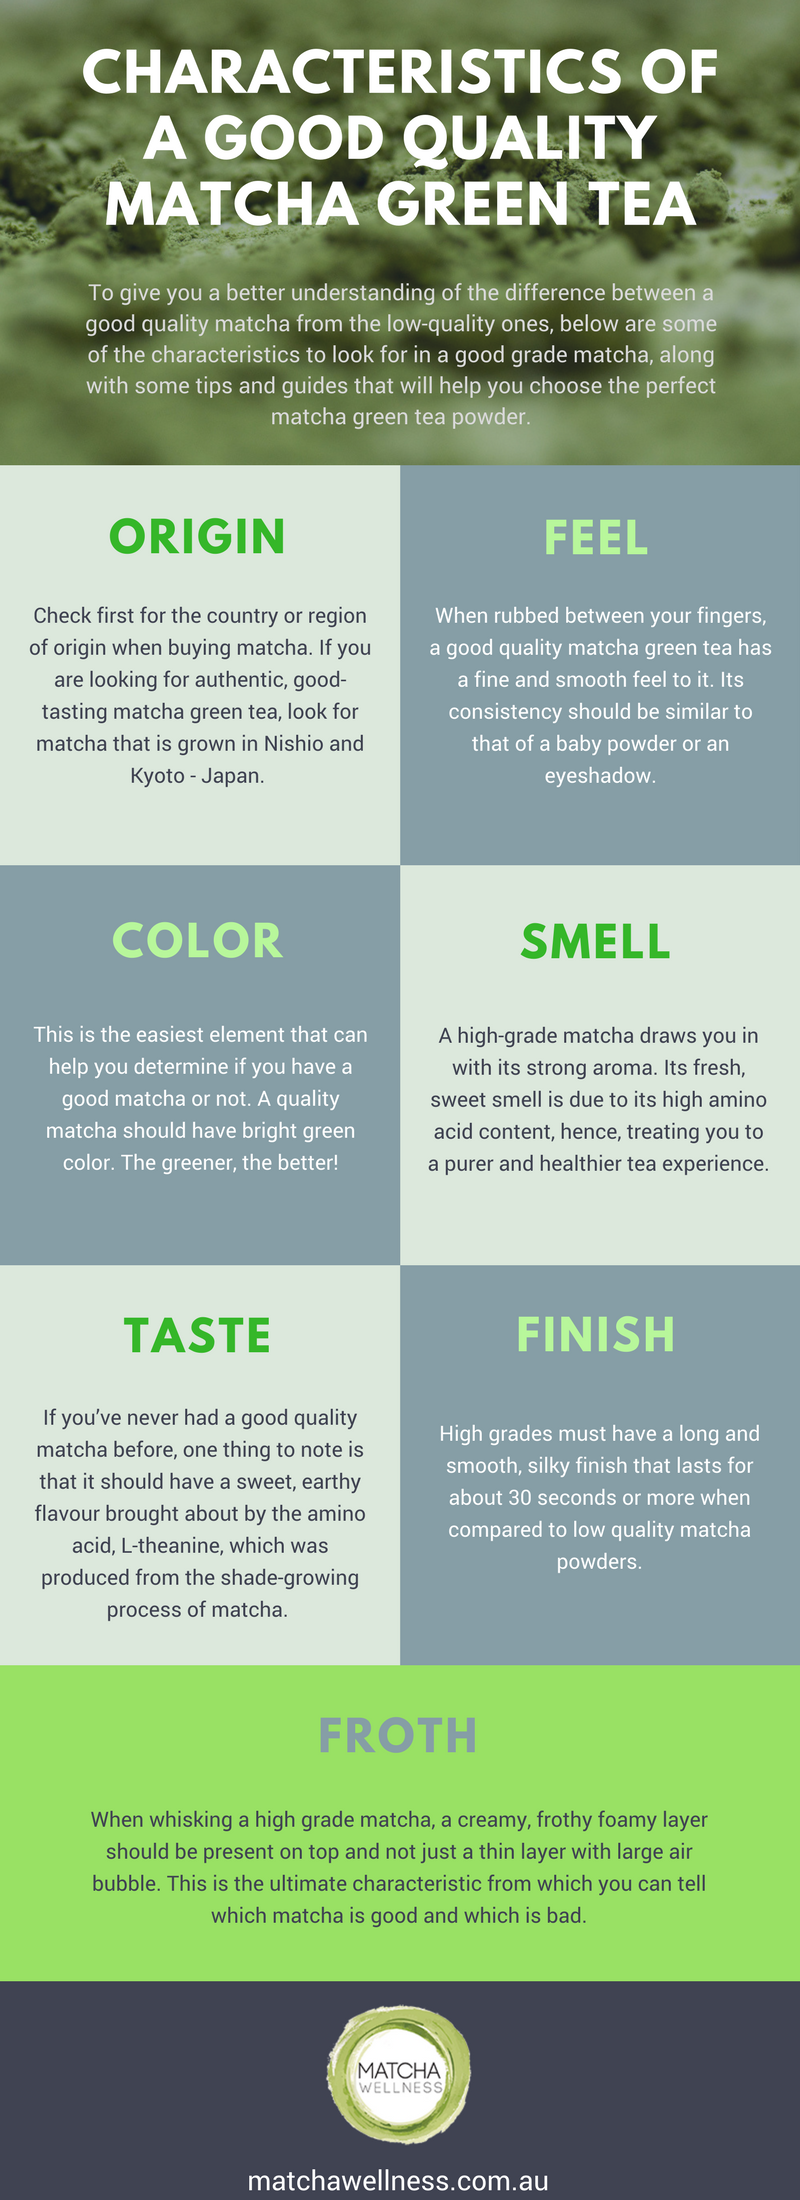 QUALITY MATCHA HOW TO TELL A GOOD MATCHA FROM A BAD ONE INFOGRAPHIC